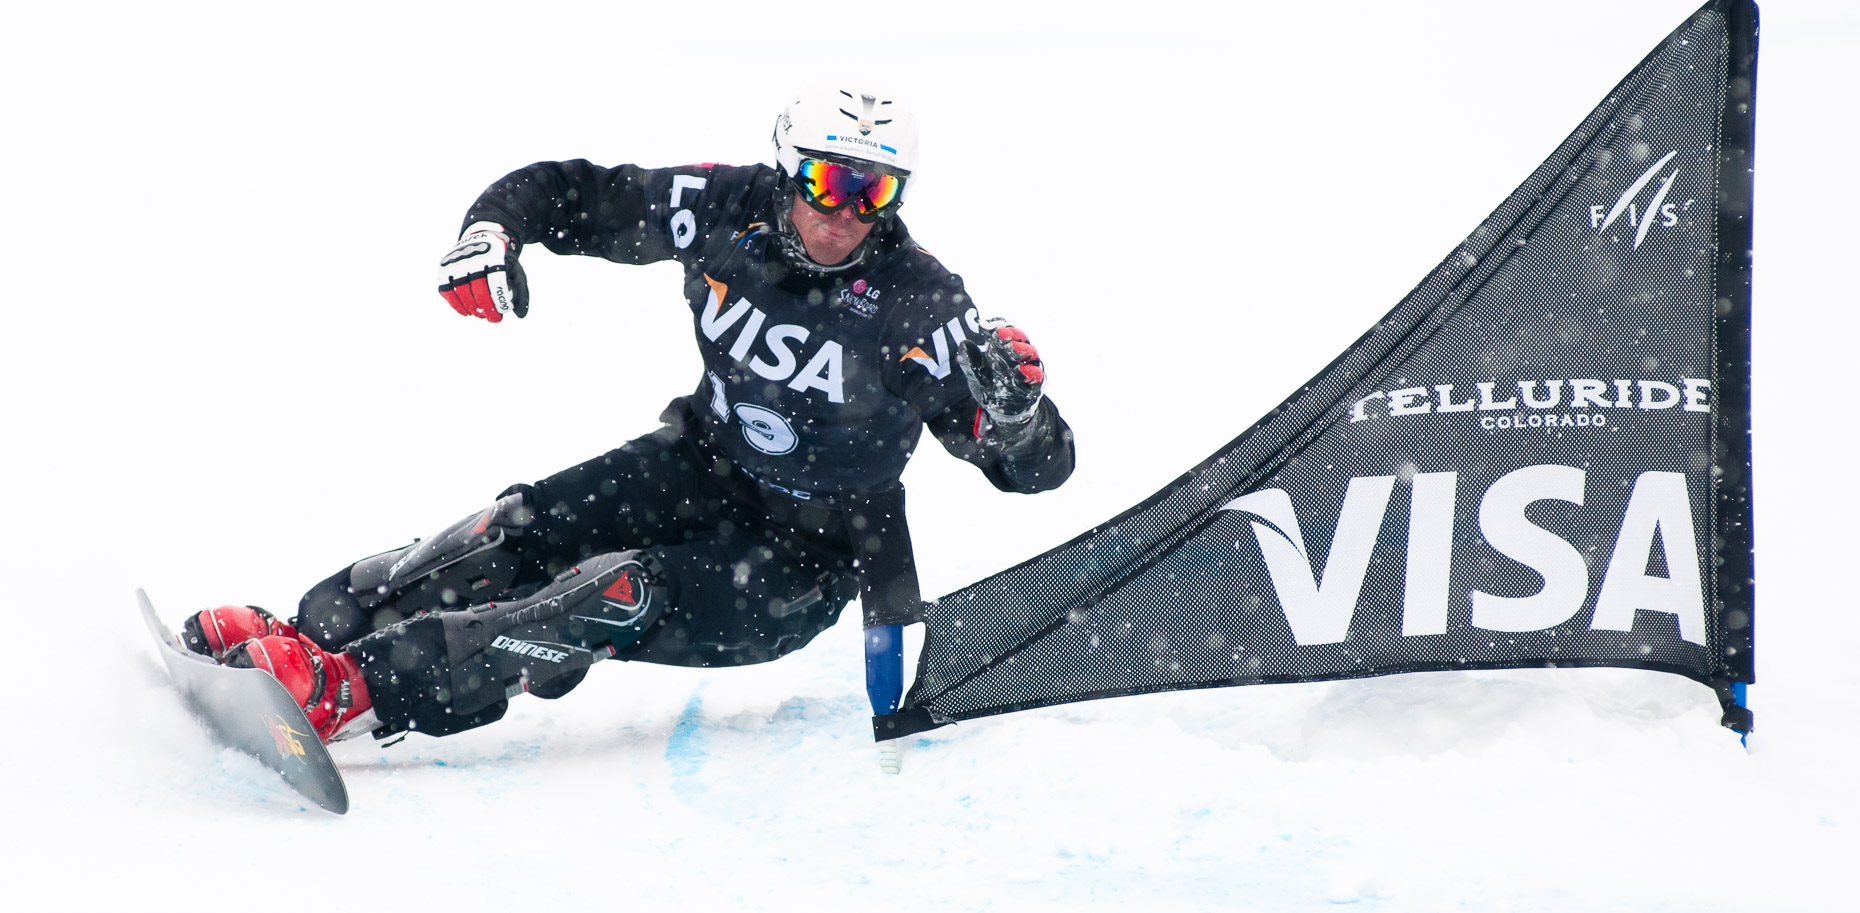 Snowboard Sports Photos